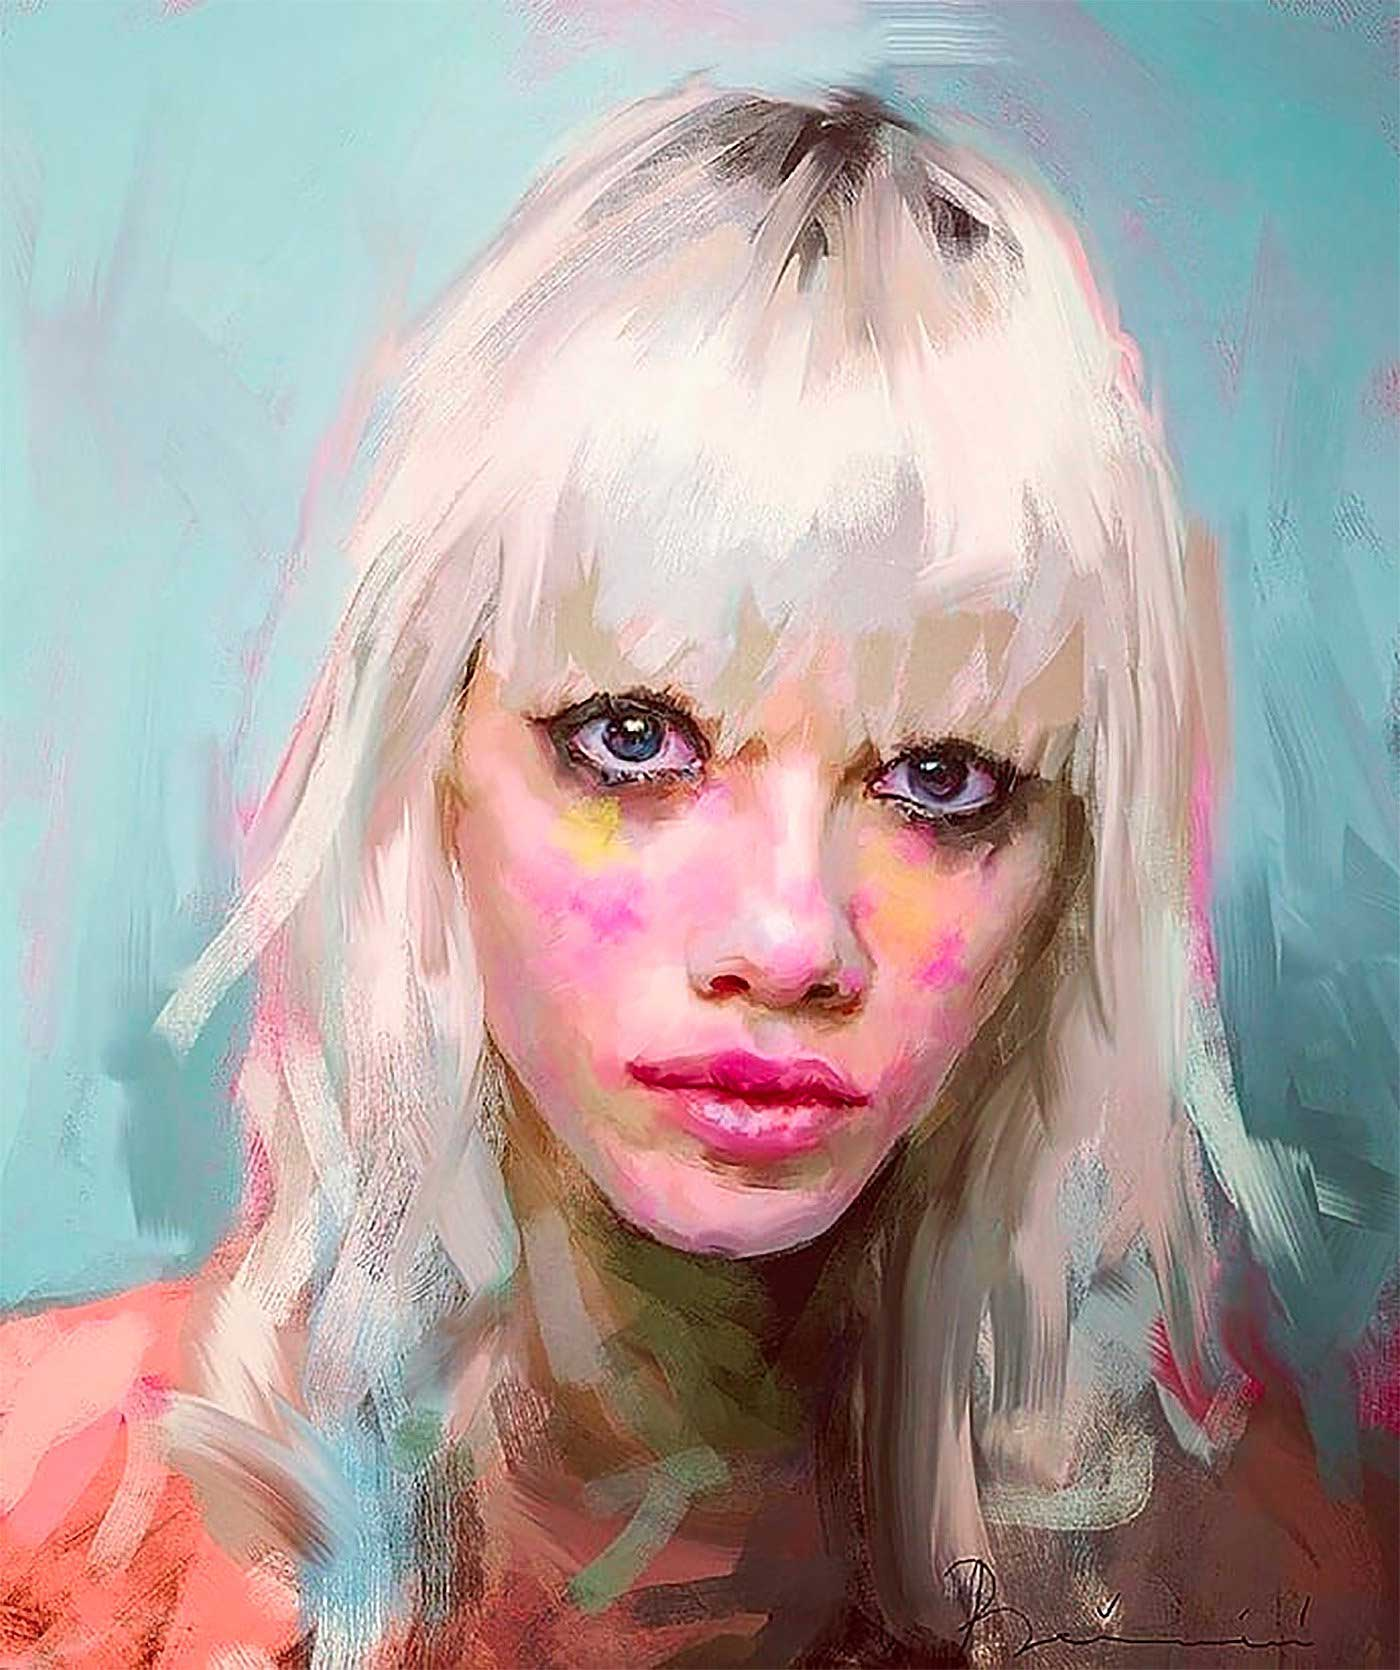 Neue Digital Paintings von Ivana Besevic Ivana-Besevic-digital-paintings-portraits-2018_02